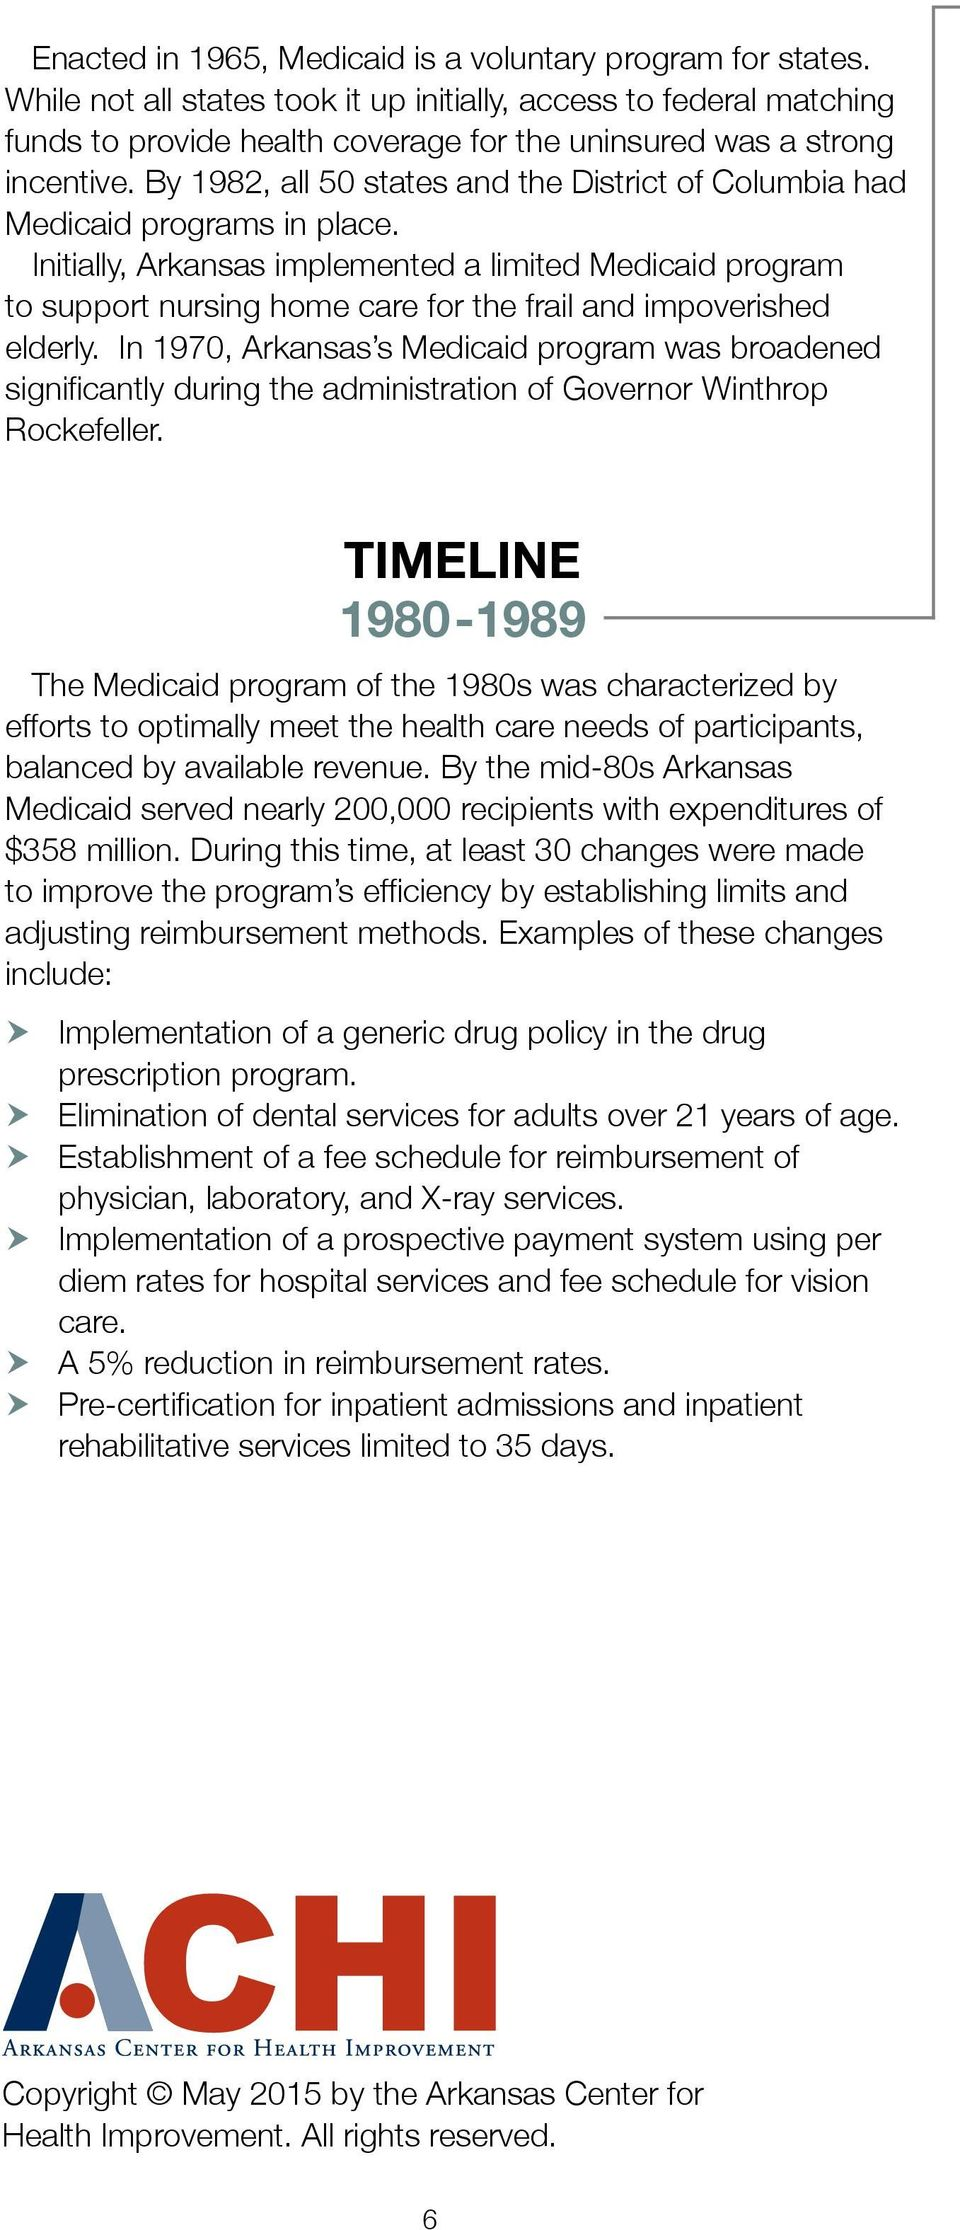 By 1982, all 50 states and the District of Columbia had Medicaid programs in place.